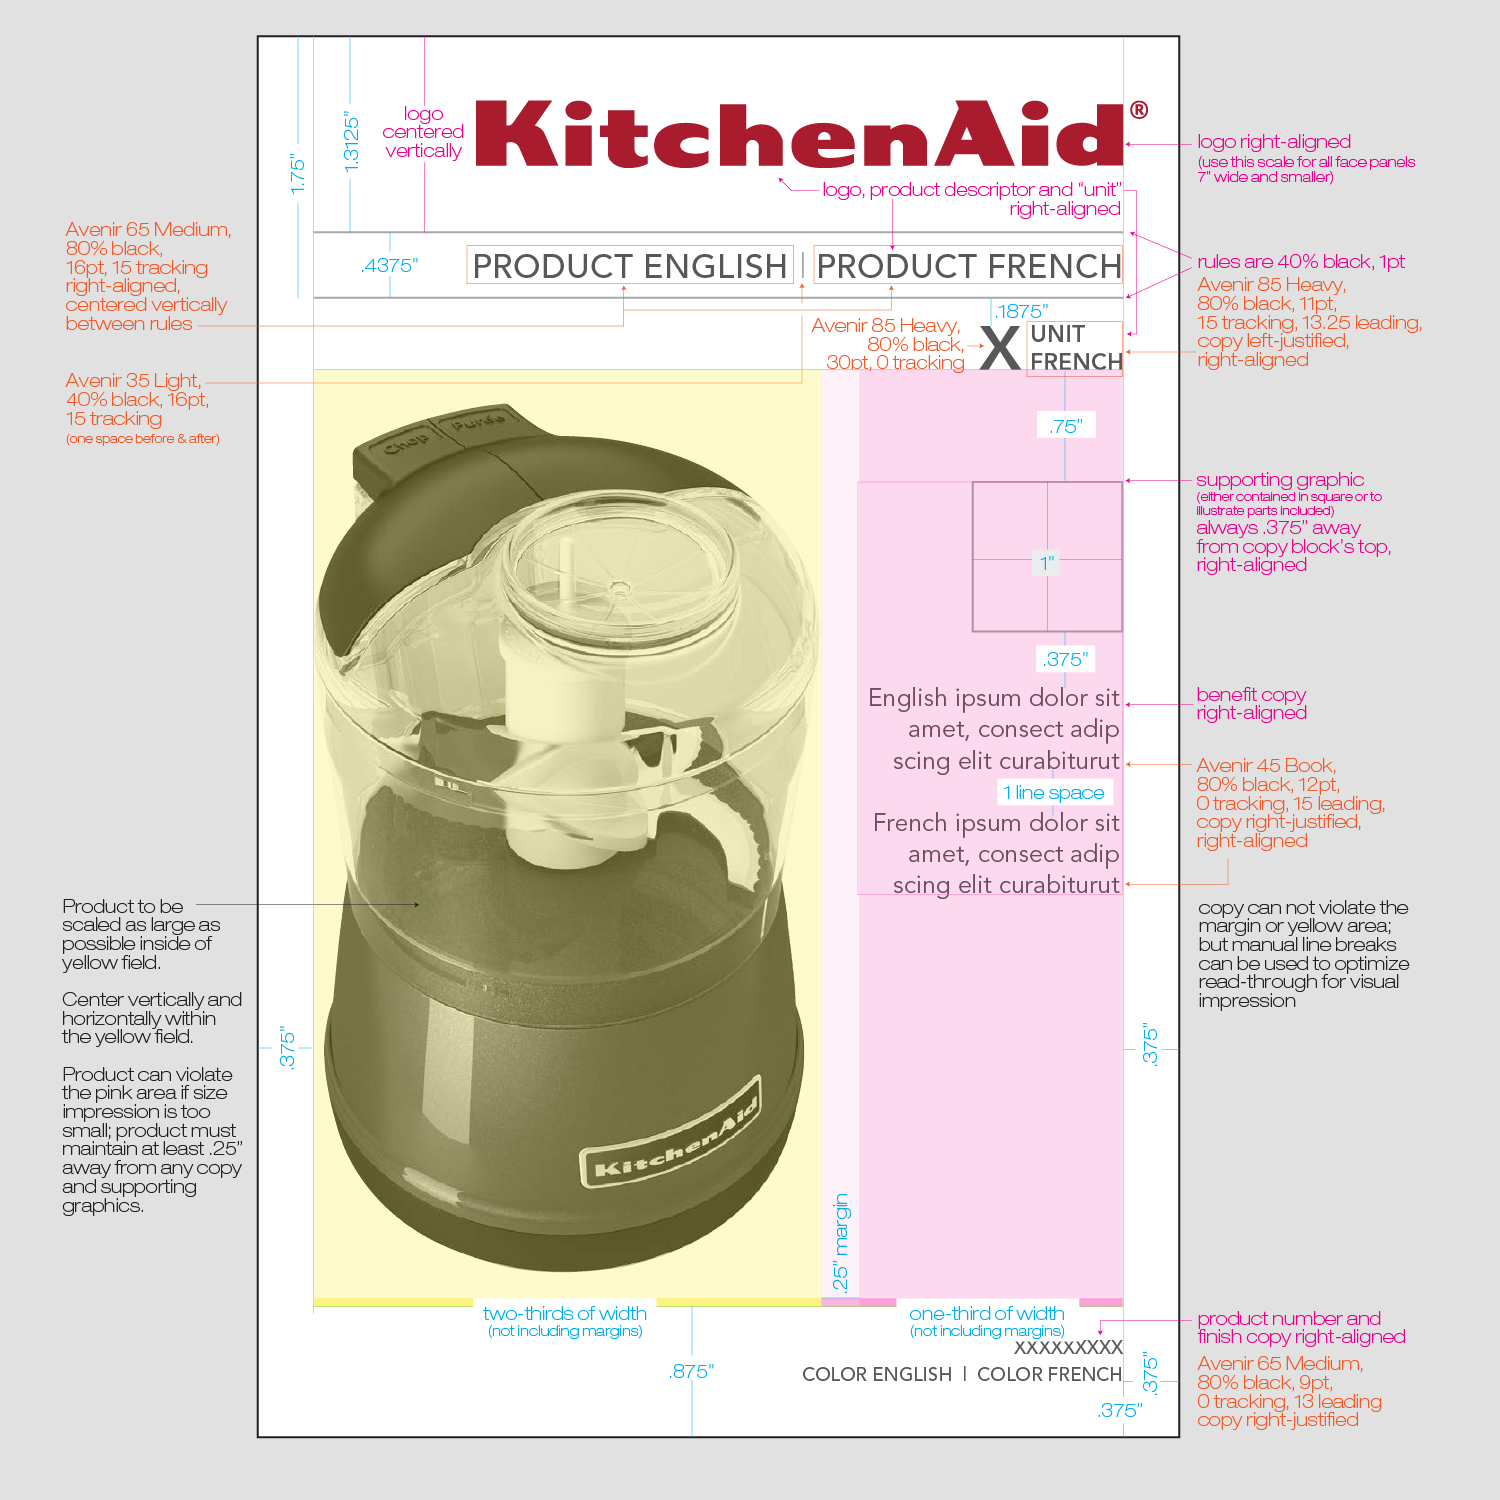 KitchenAid-Packaging-Messaging.jpg